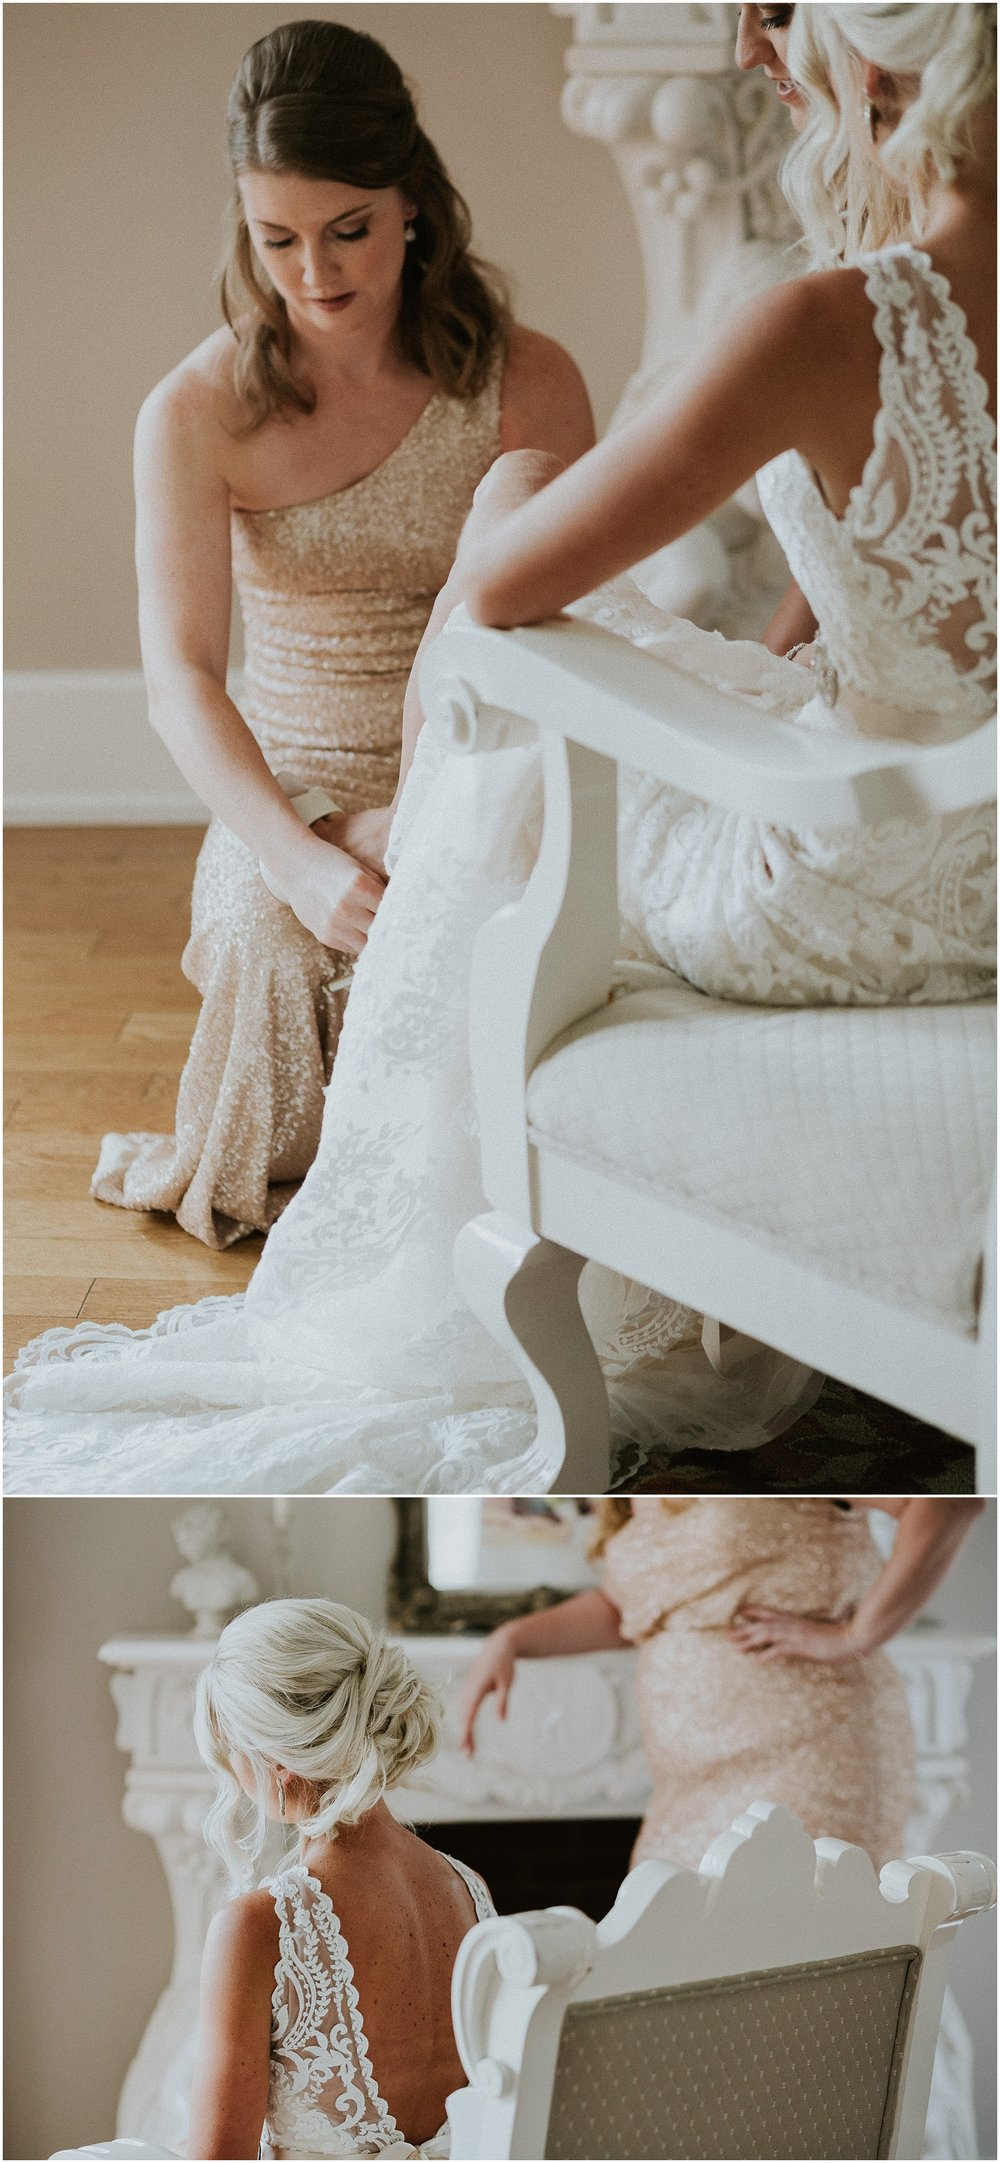 Romantic Bridal portraits at The Historic Acres of Hershey in Hershey Pennsylvania